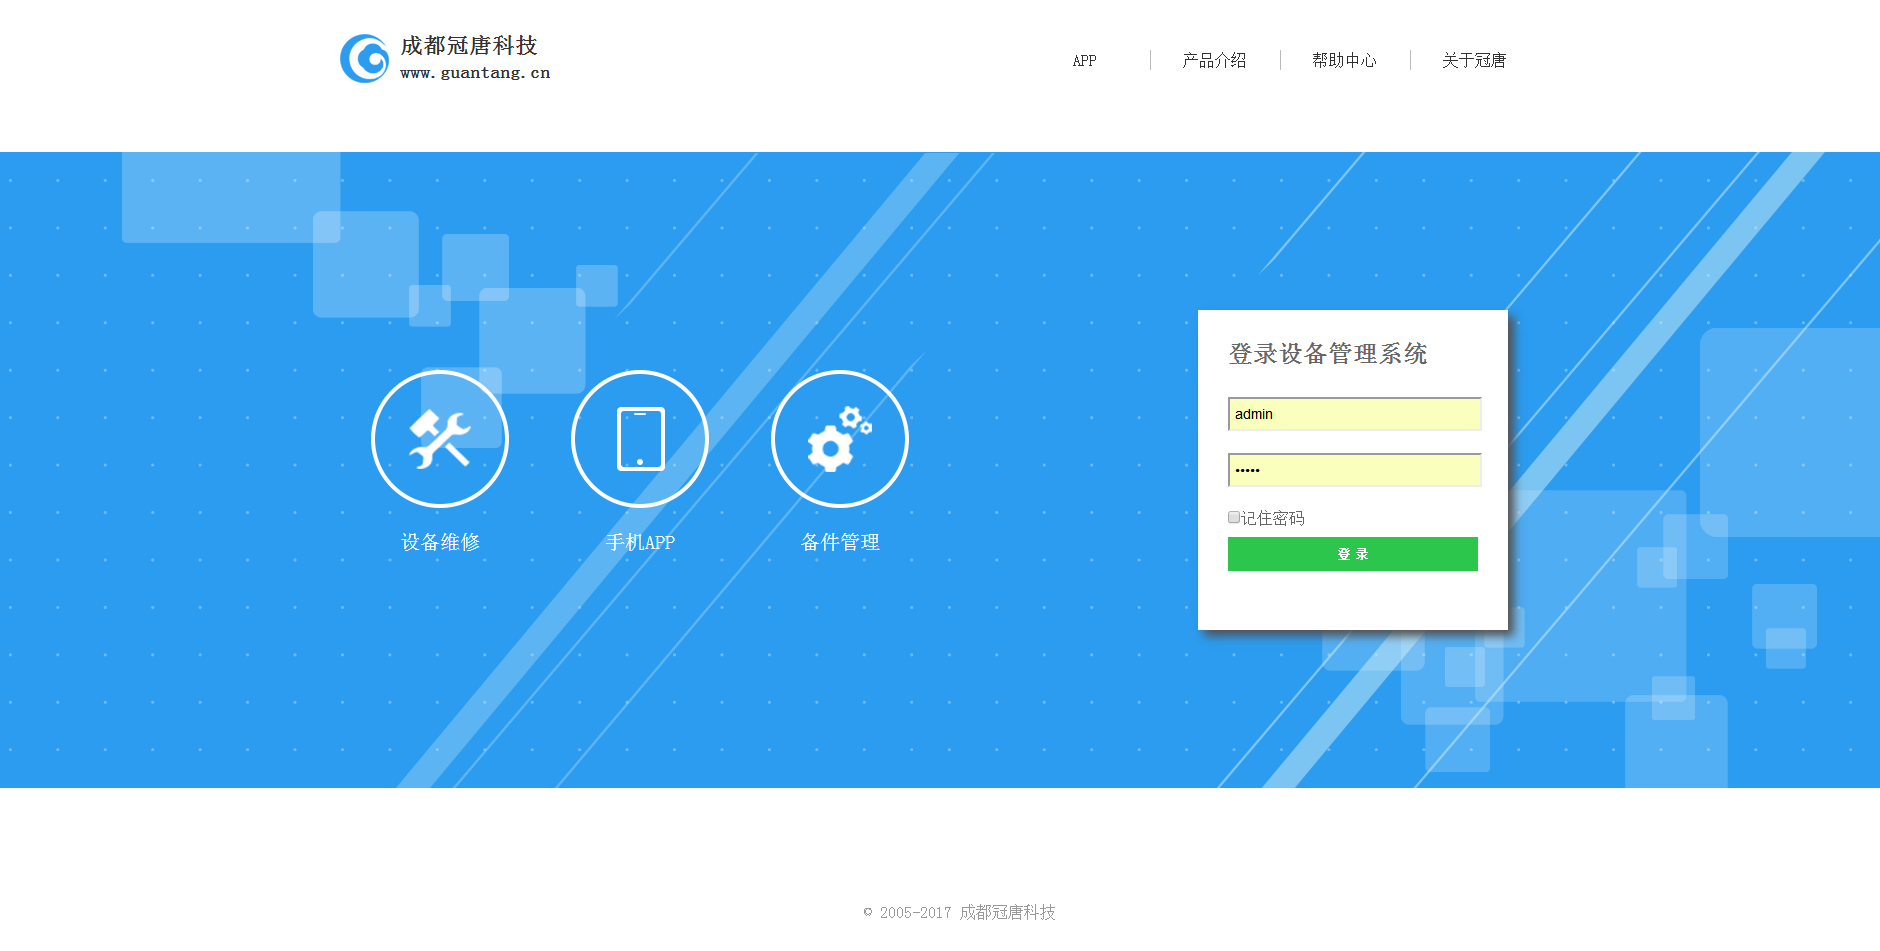 Guan Tang equipment management system web version supports mobile phone APP  repair spare parts inventory inspection